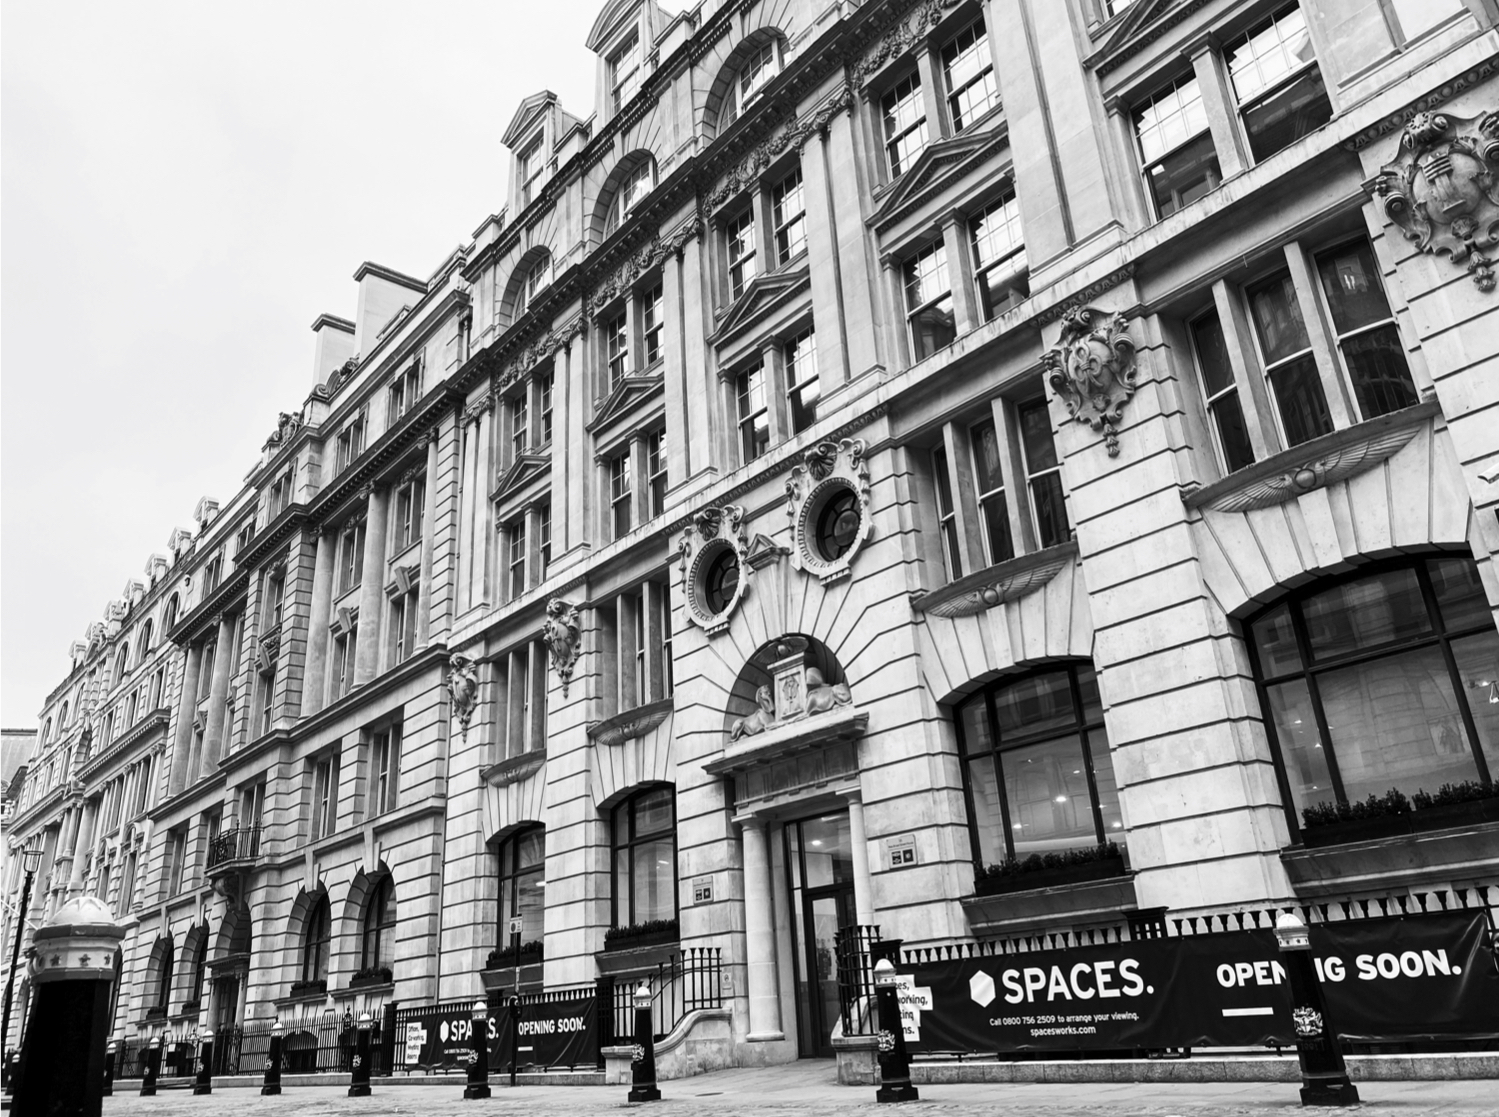 A black and white photograph of outside a brick building in central London. A Spaces banner on the railings in front of the building